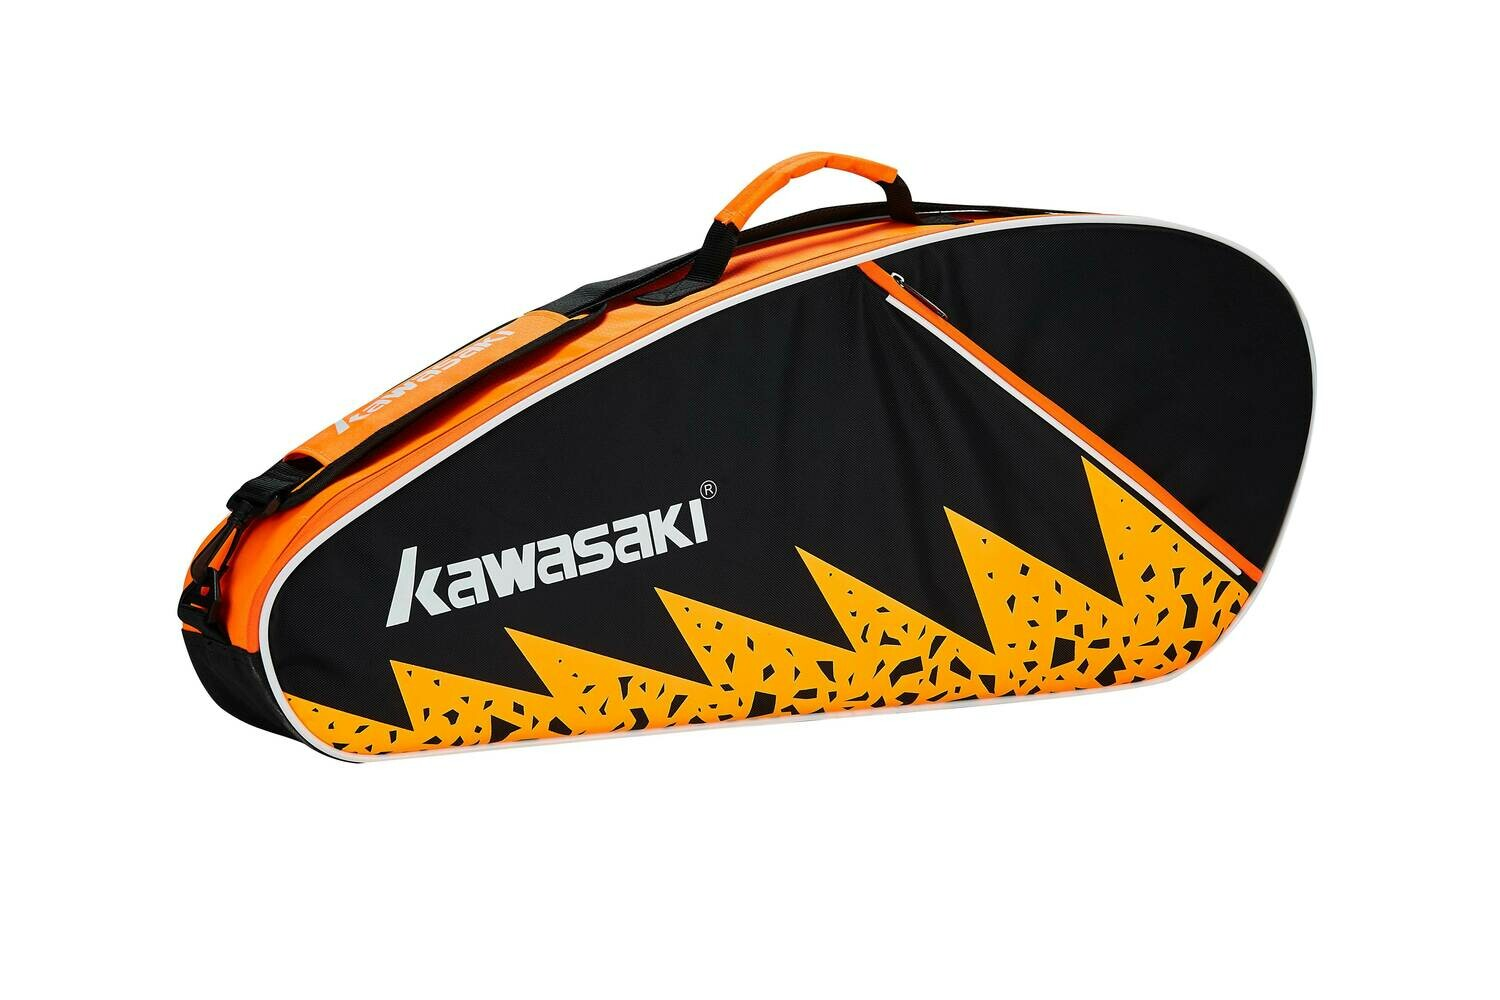 Kawasaki KBB-8336 3 Racket Bag - Black/Orange